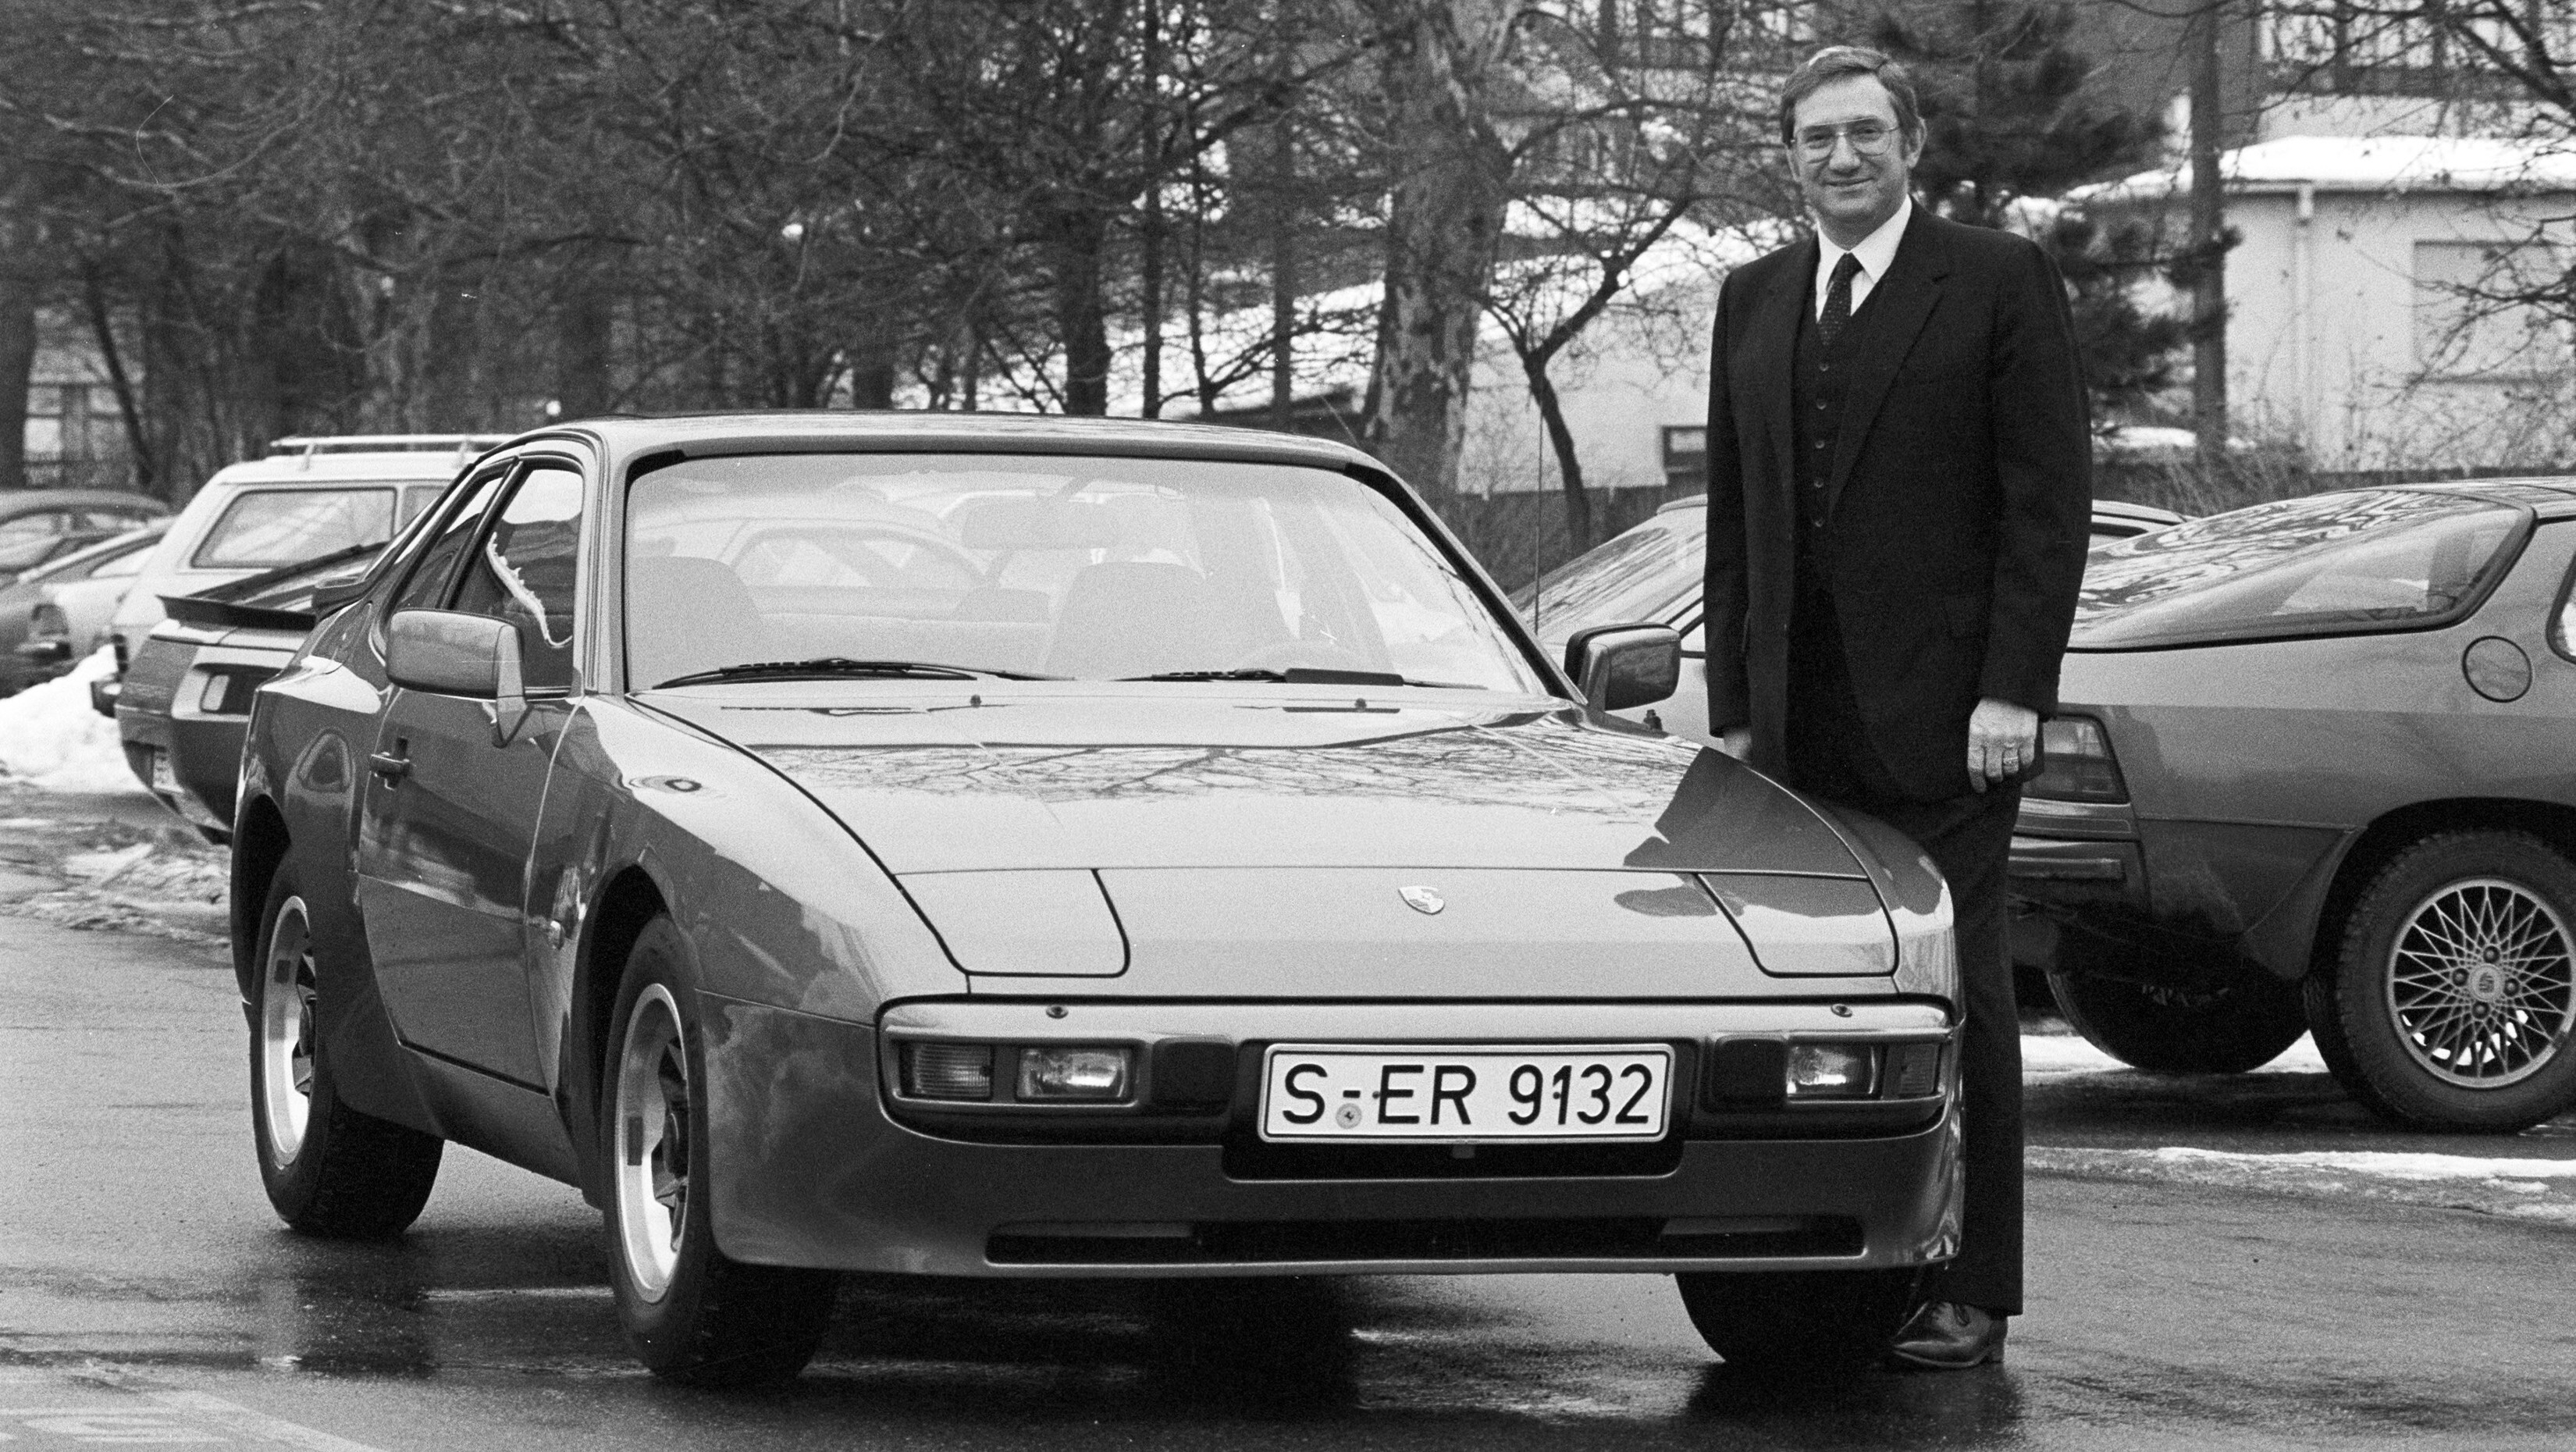 The 944